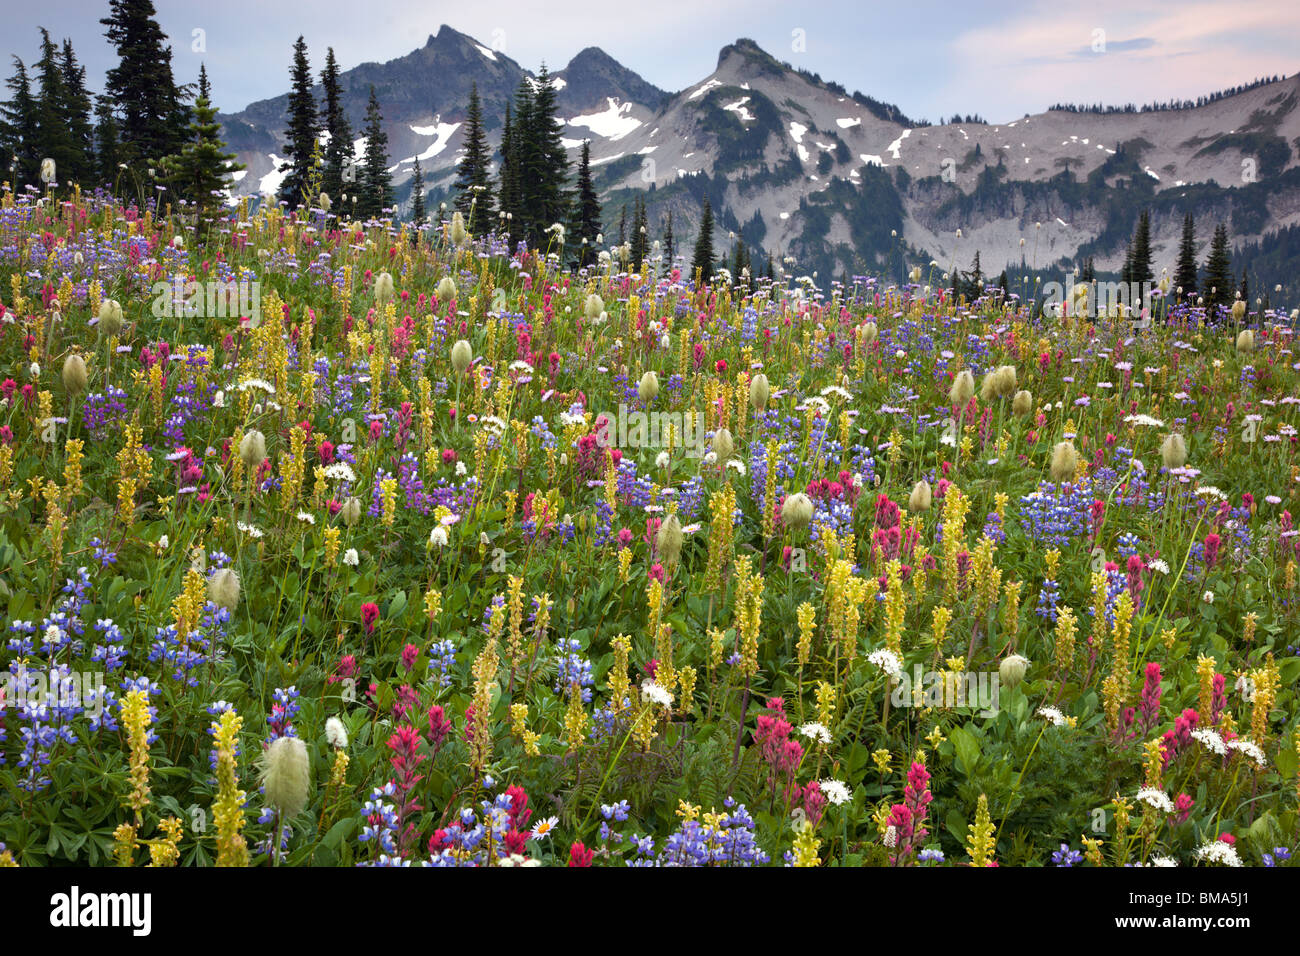 Mount Rainier Natl Park, WA Peaks of the Tatoosh Range above a lush meadow of alpine wildflowers on Mazama ridge - Stock Image